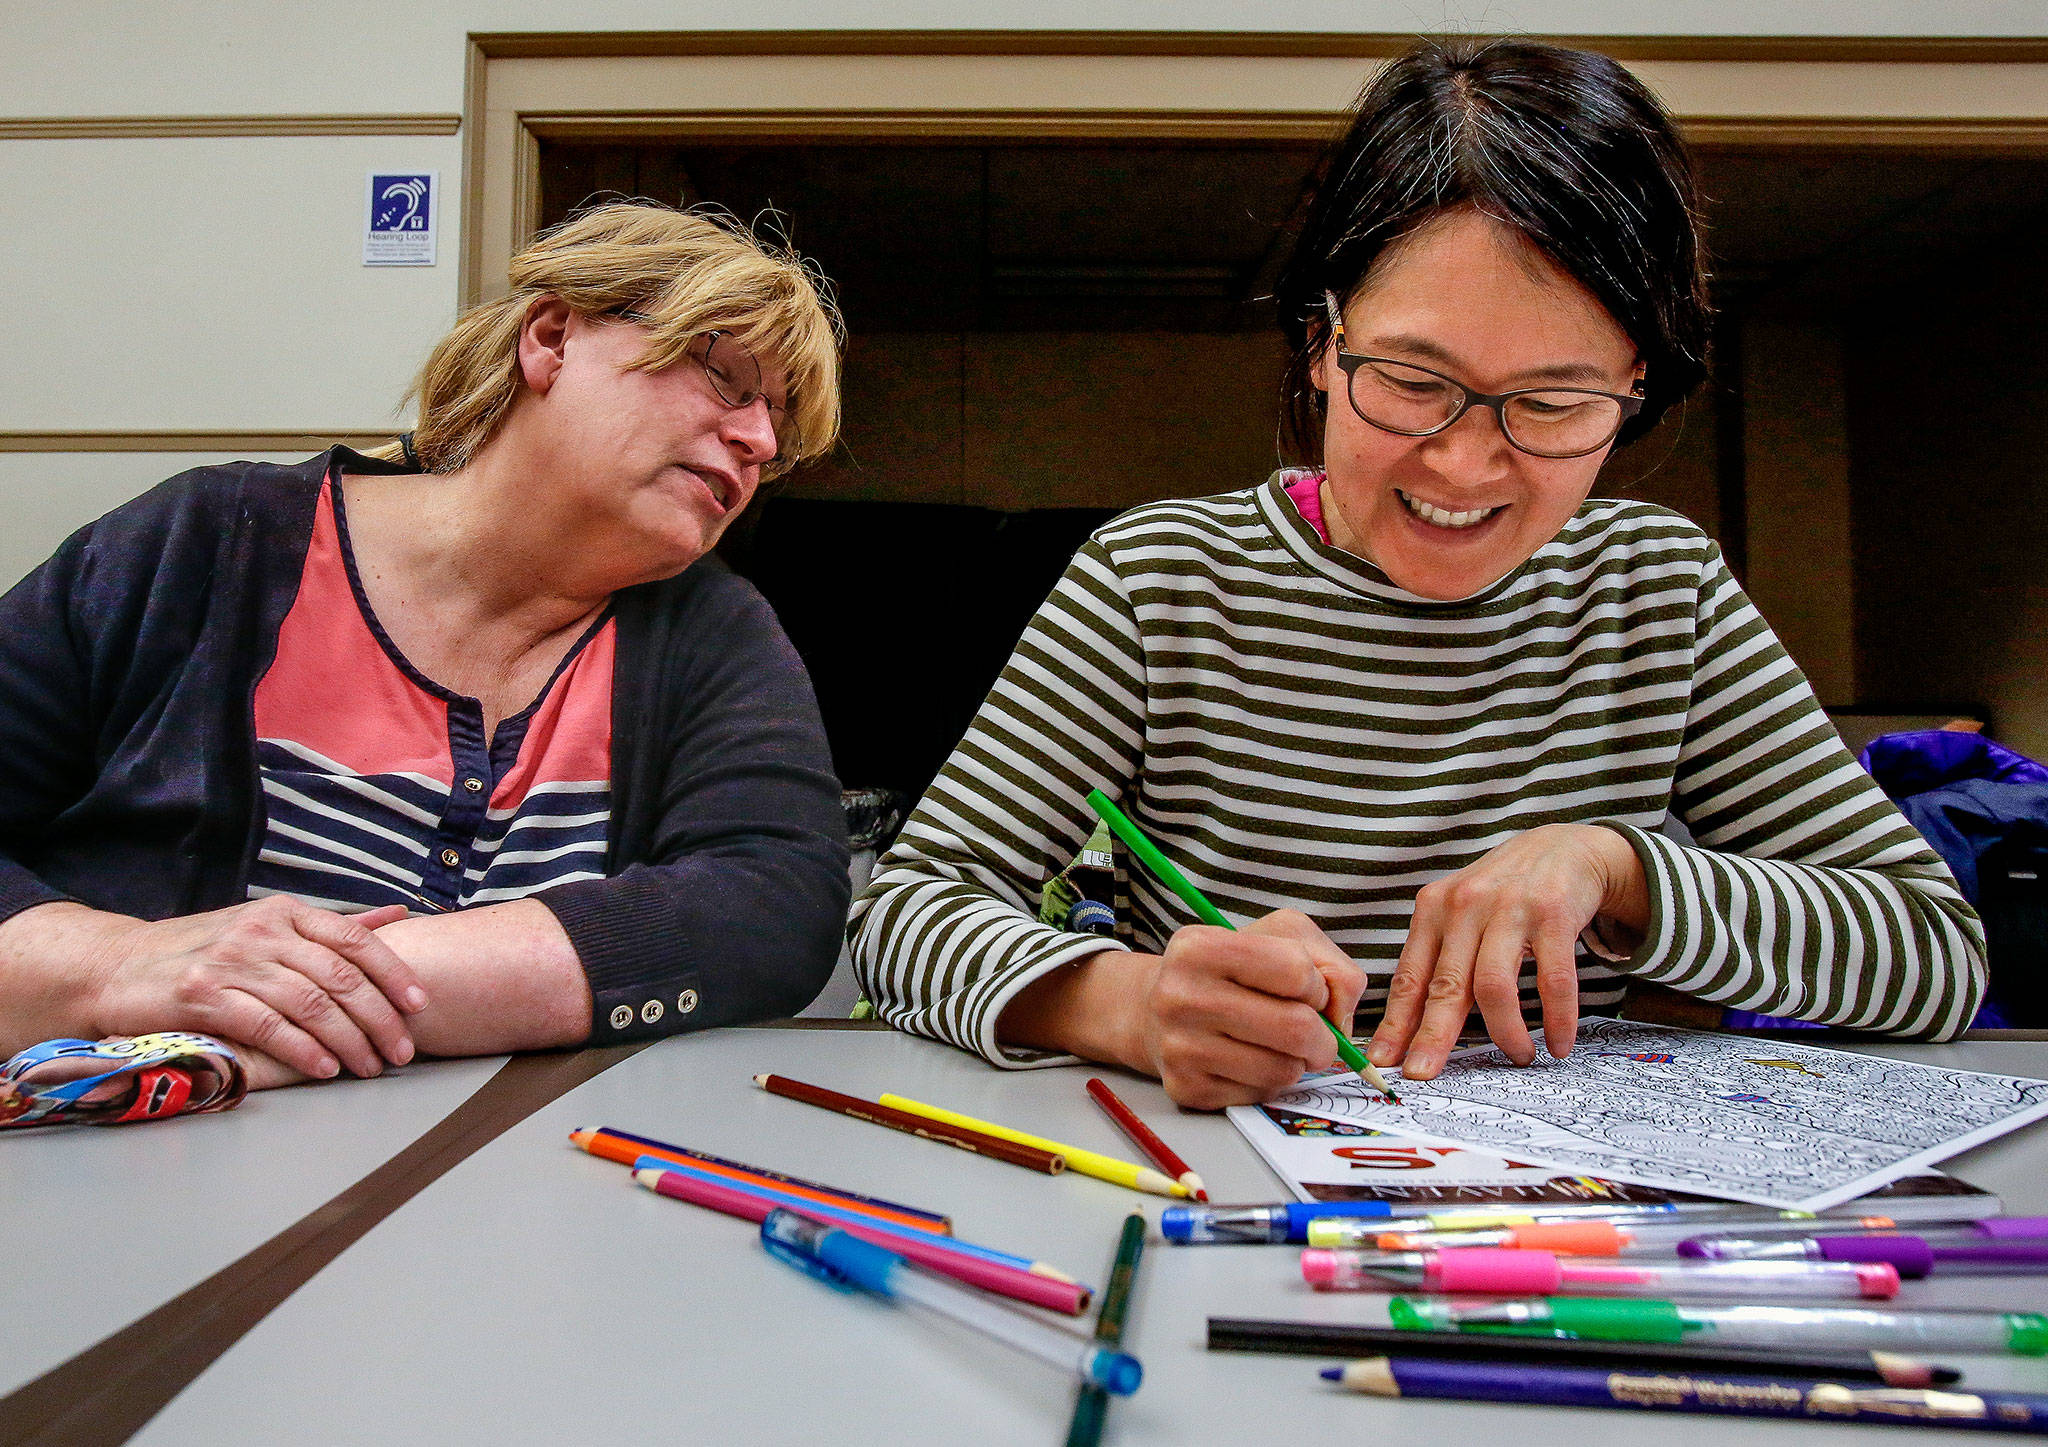 Library page Joanna Thomas (left) visits with Wai Ng, 59, while Ng gets started on a coloring project Wednesday night at the Everett Public Library's Coloring and Conversation. The program, which has become quite popular, was started by Thomas. It is free and takes place the first Wednesday of each month. (Dan Bates / The Herald)